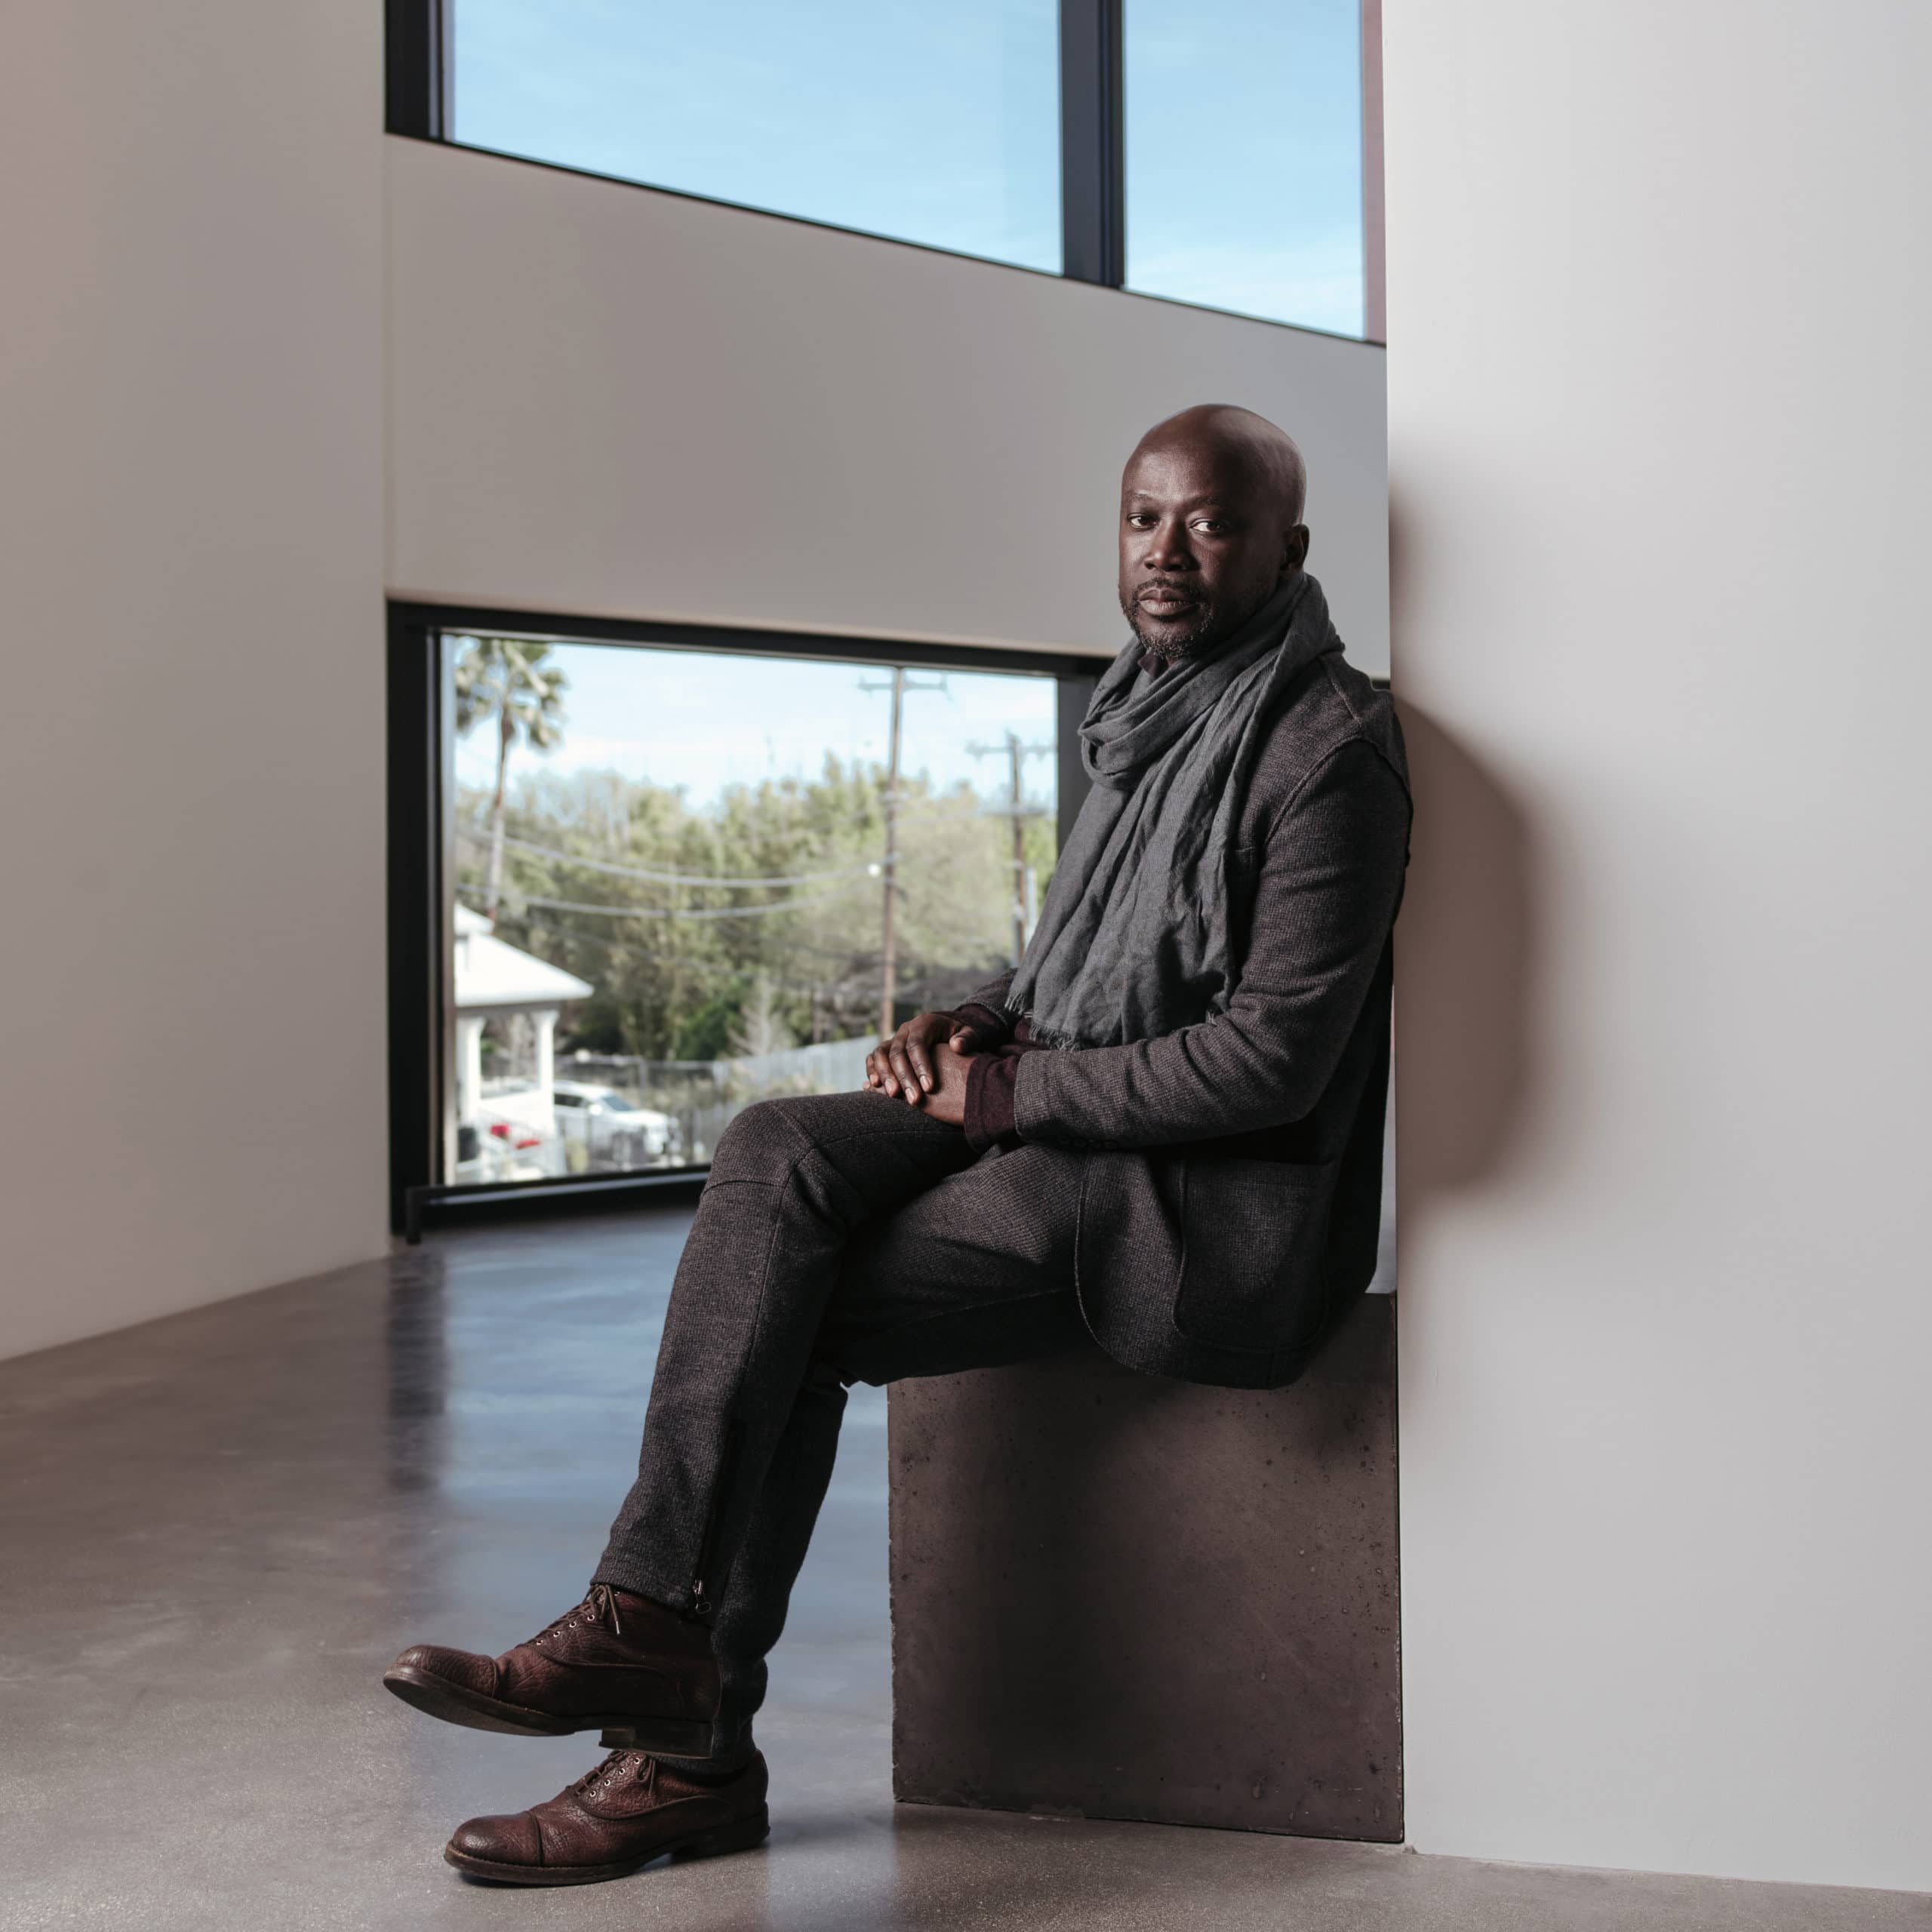 Profile picture of Sir David Adjaye by Josh Huskin. Man in jeans, jacket, and a scarf sitting with his legs crossed.